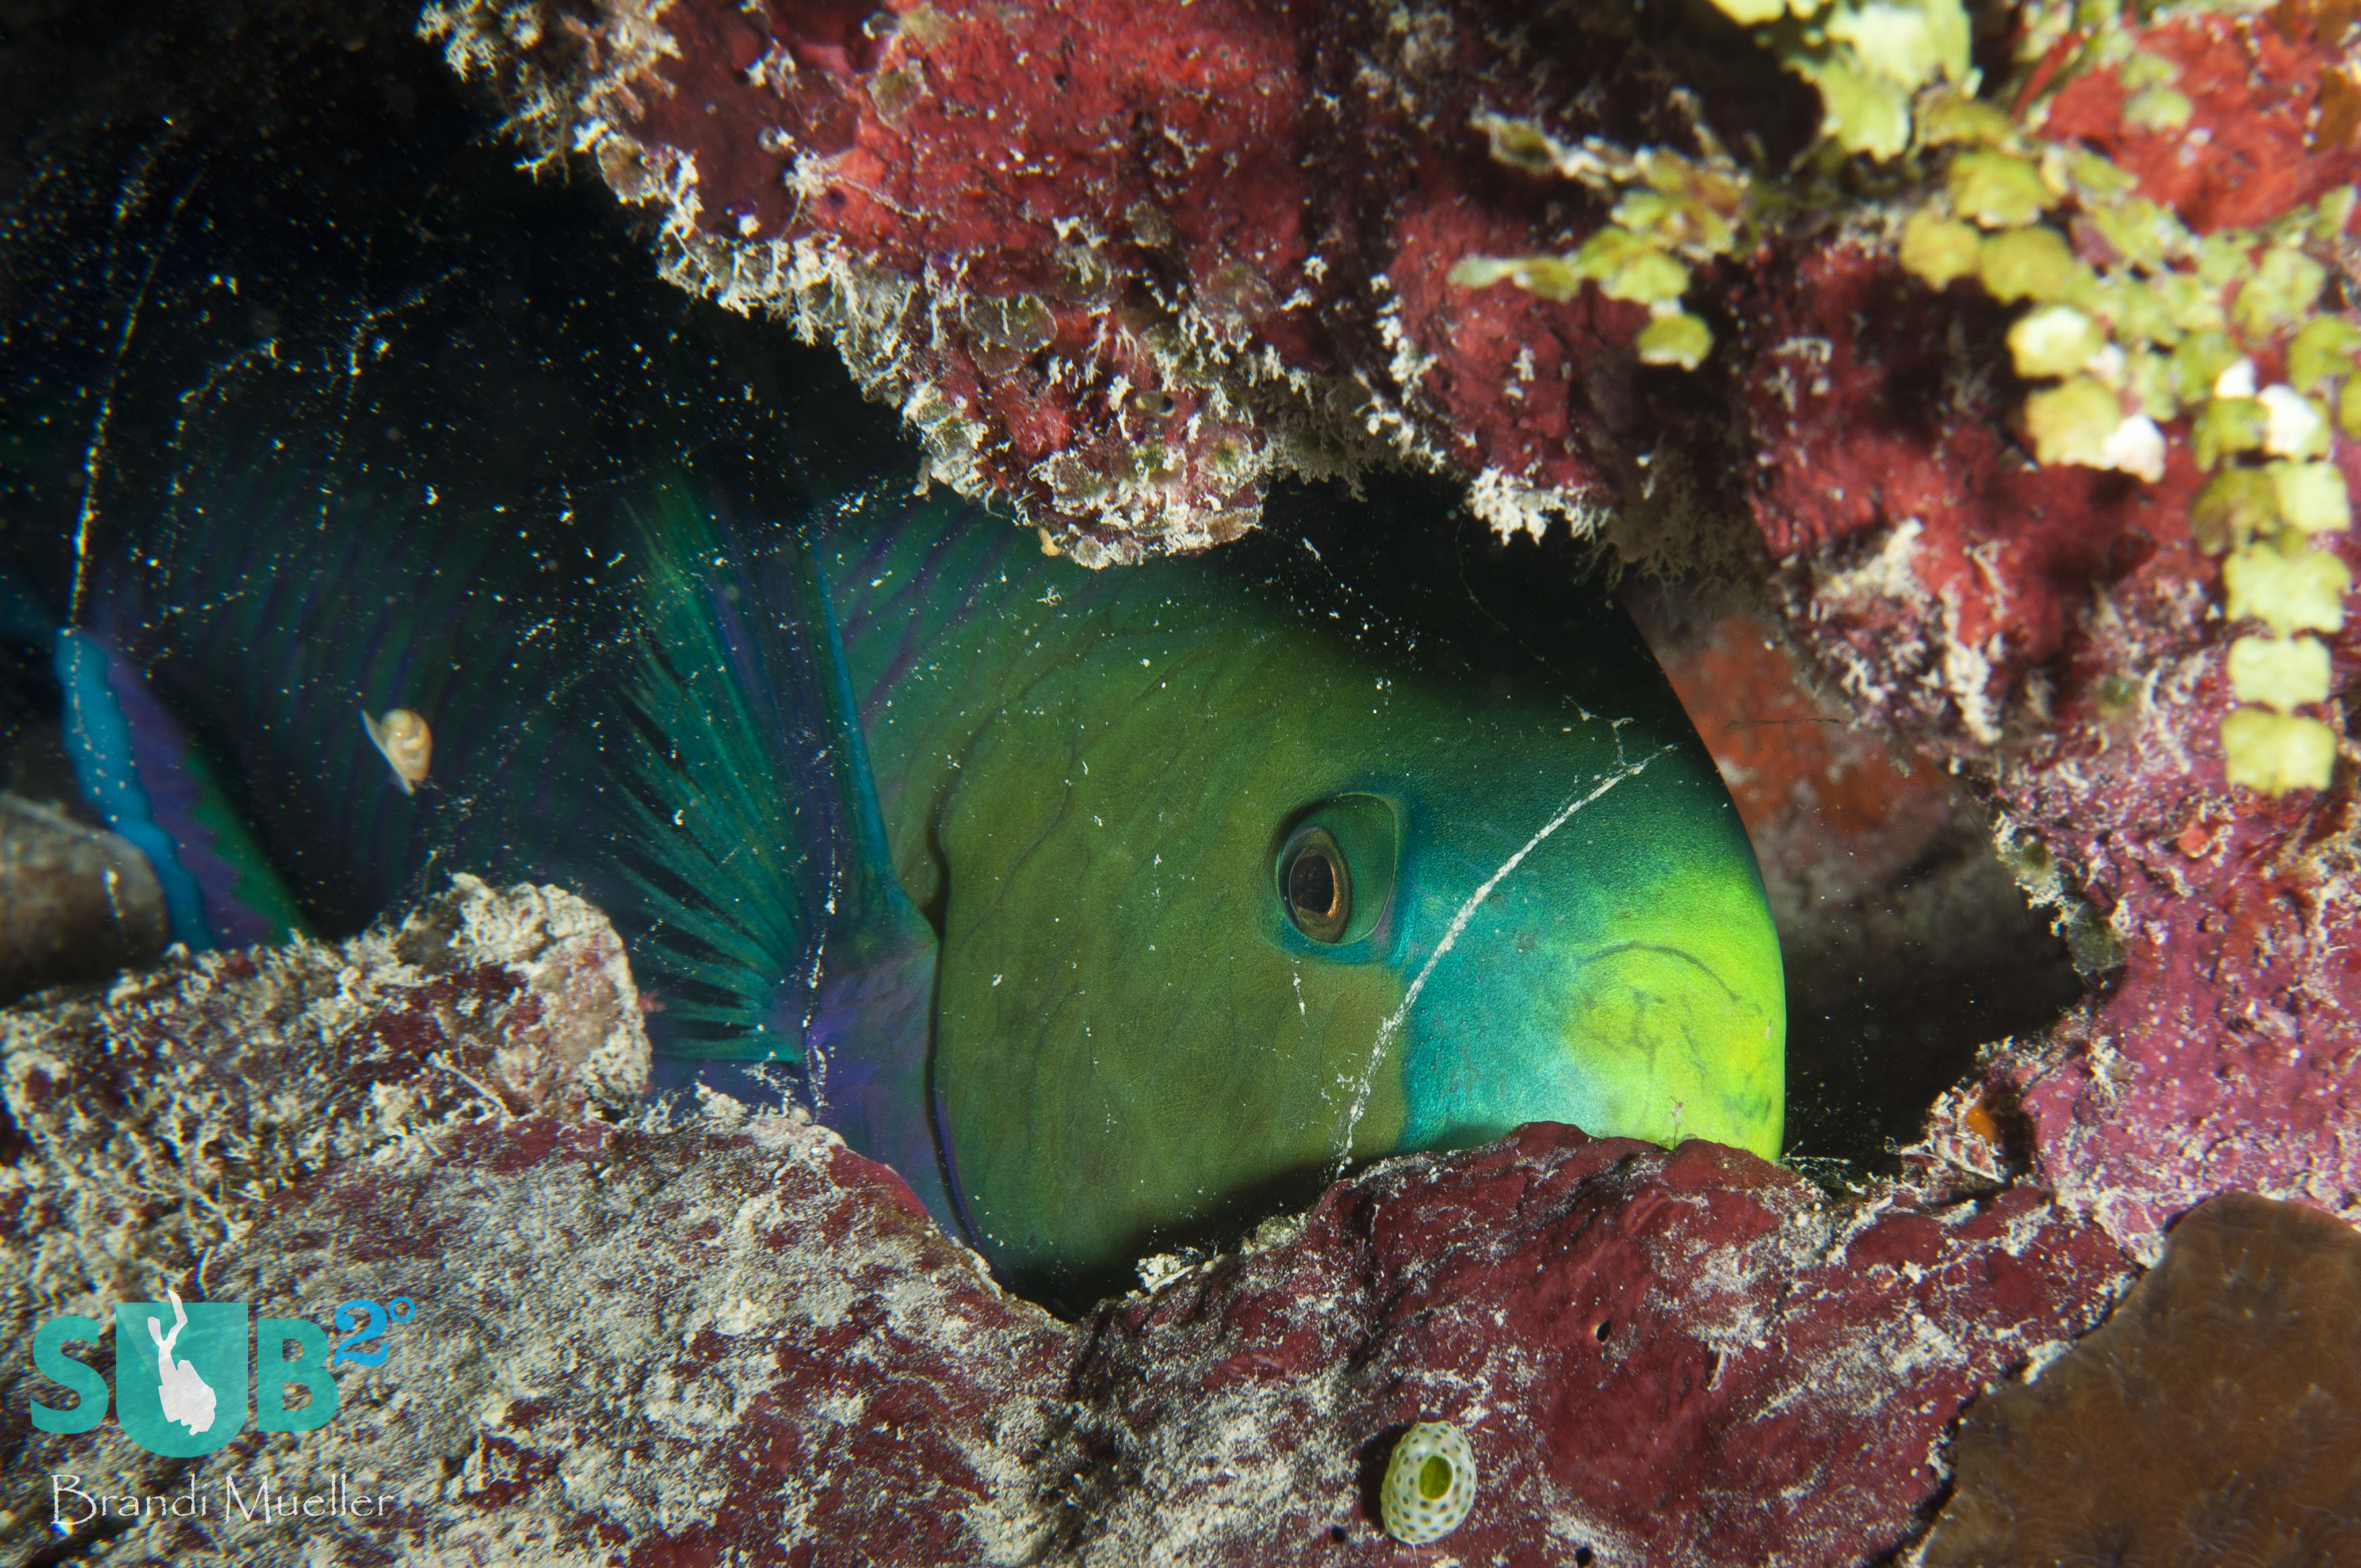 Tucked in for the night, this parrotfish has produced a mucus bubble around its body to protect it from predators during the night. The bubble hides its scent and will awaken the parrotfish if popped.